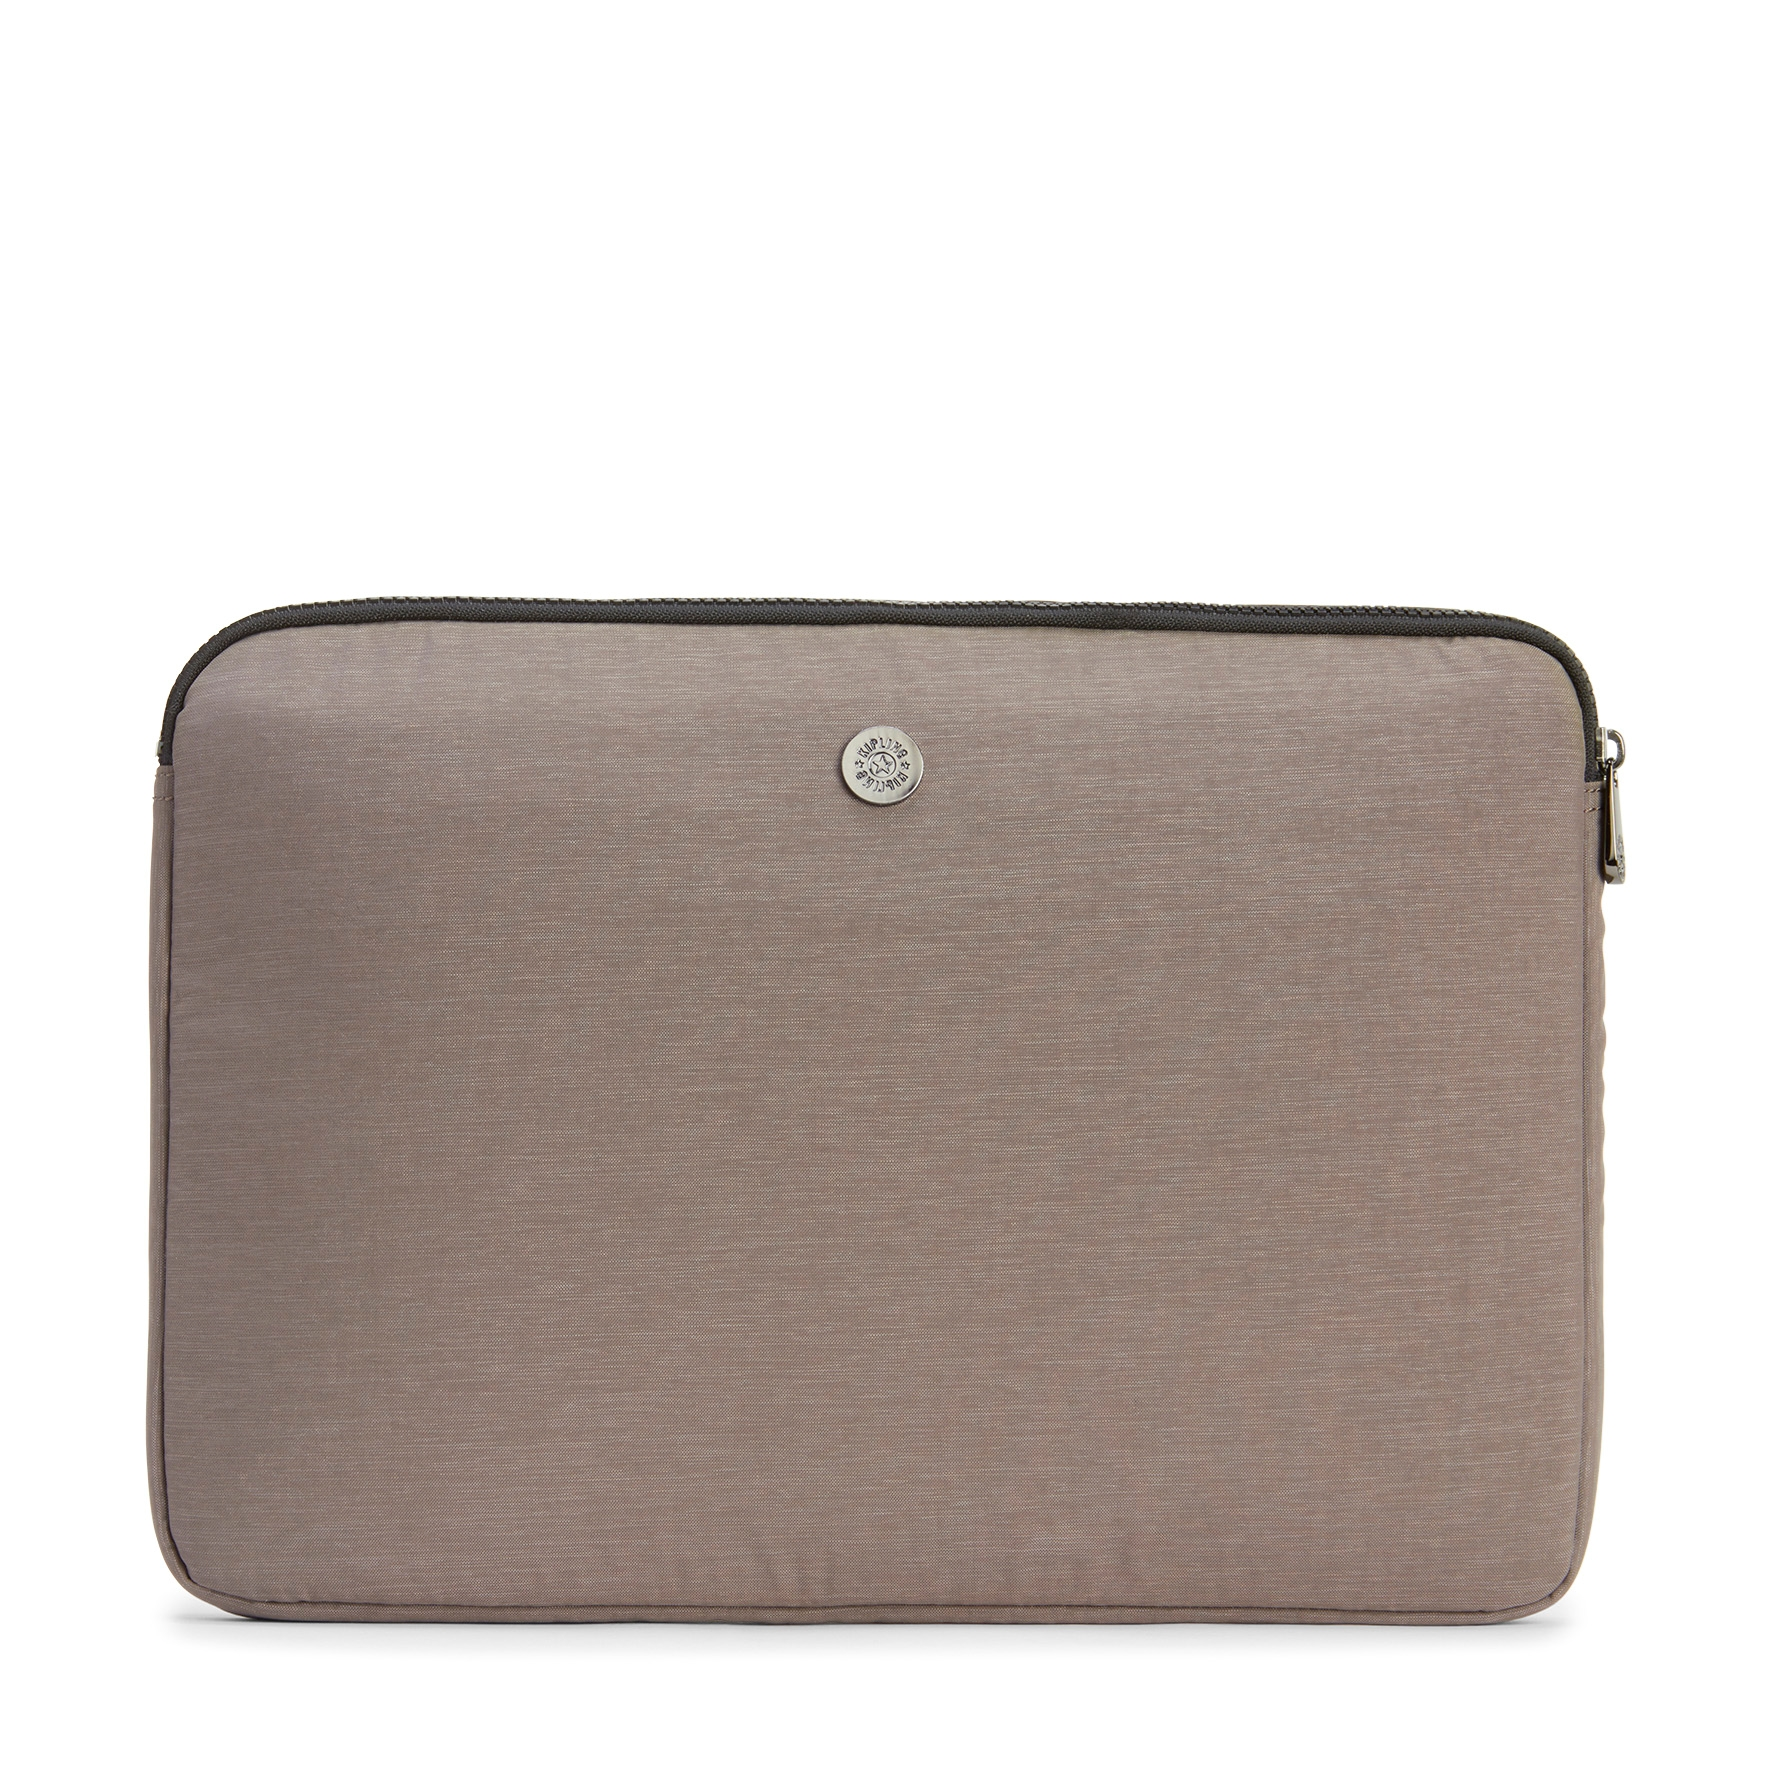 resm LAPTOP COVER 15